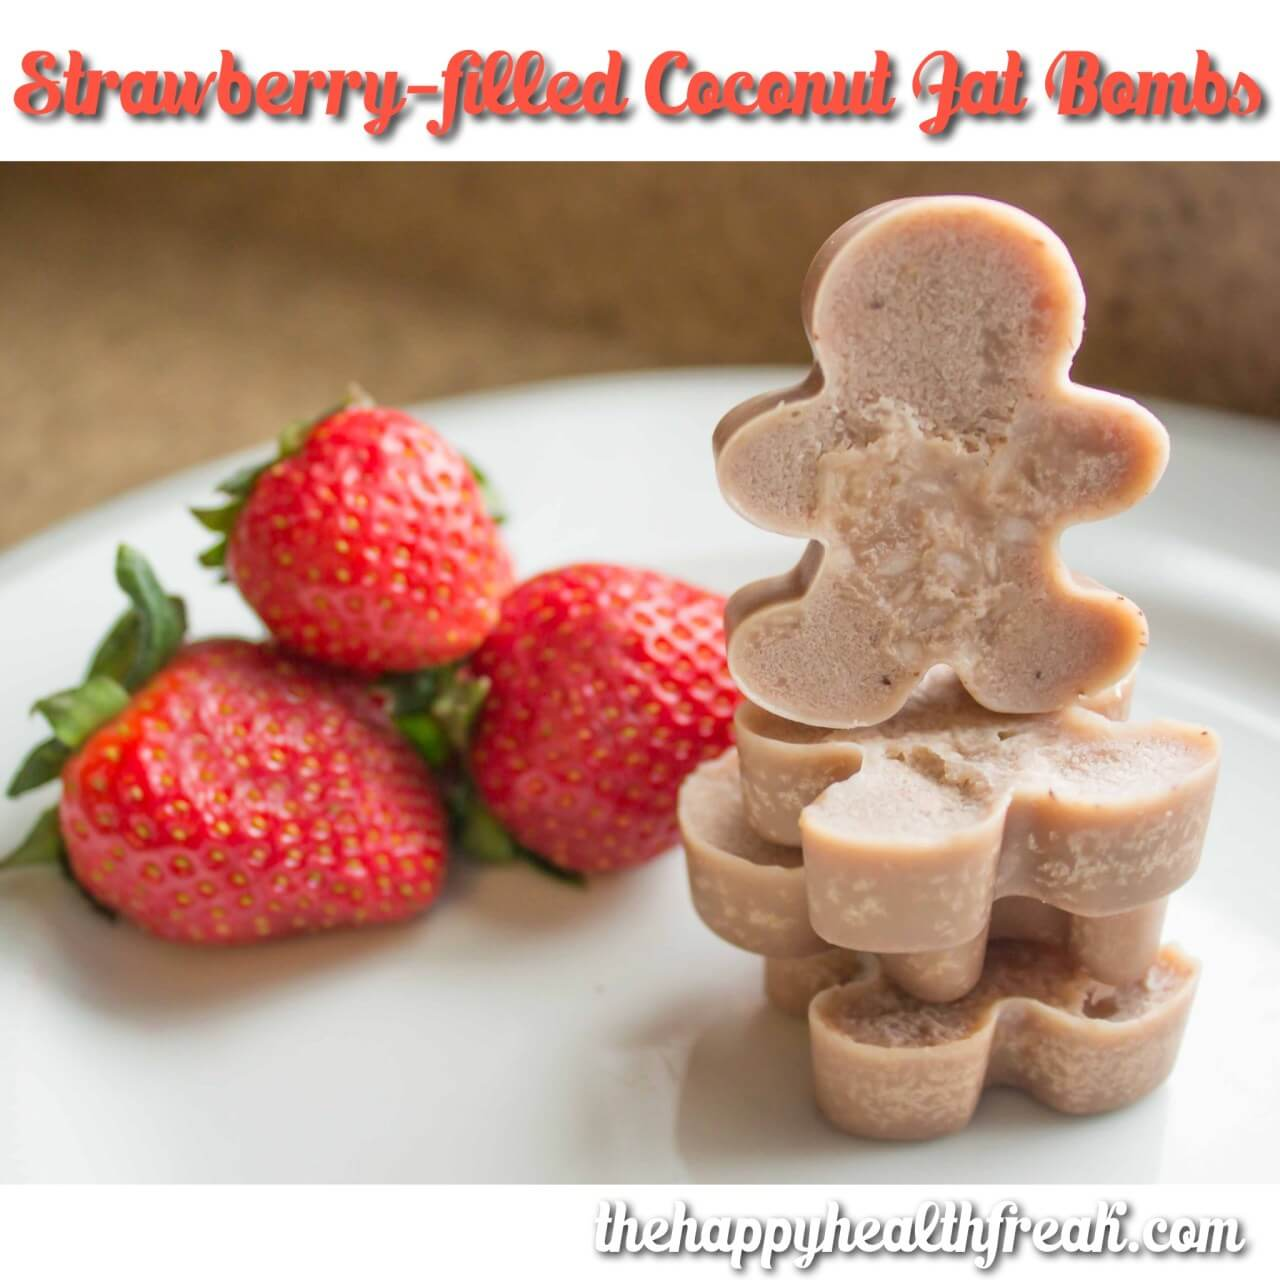 Strawberry-filled Coconut Fat Bombs